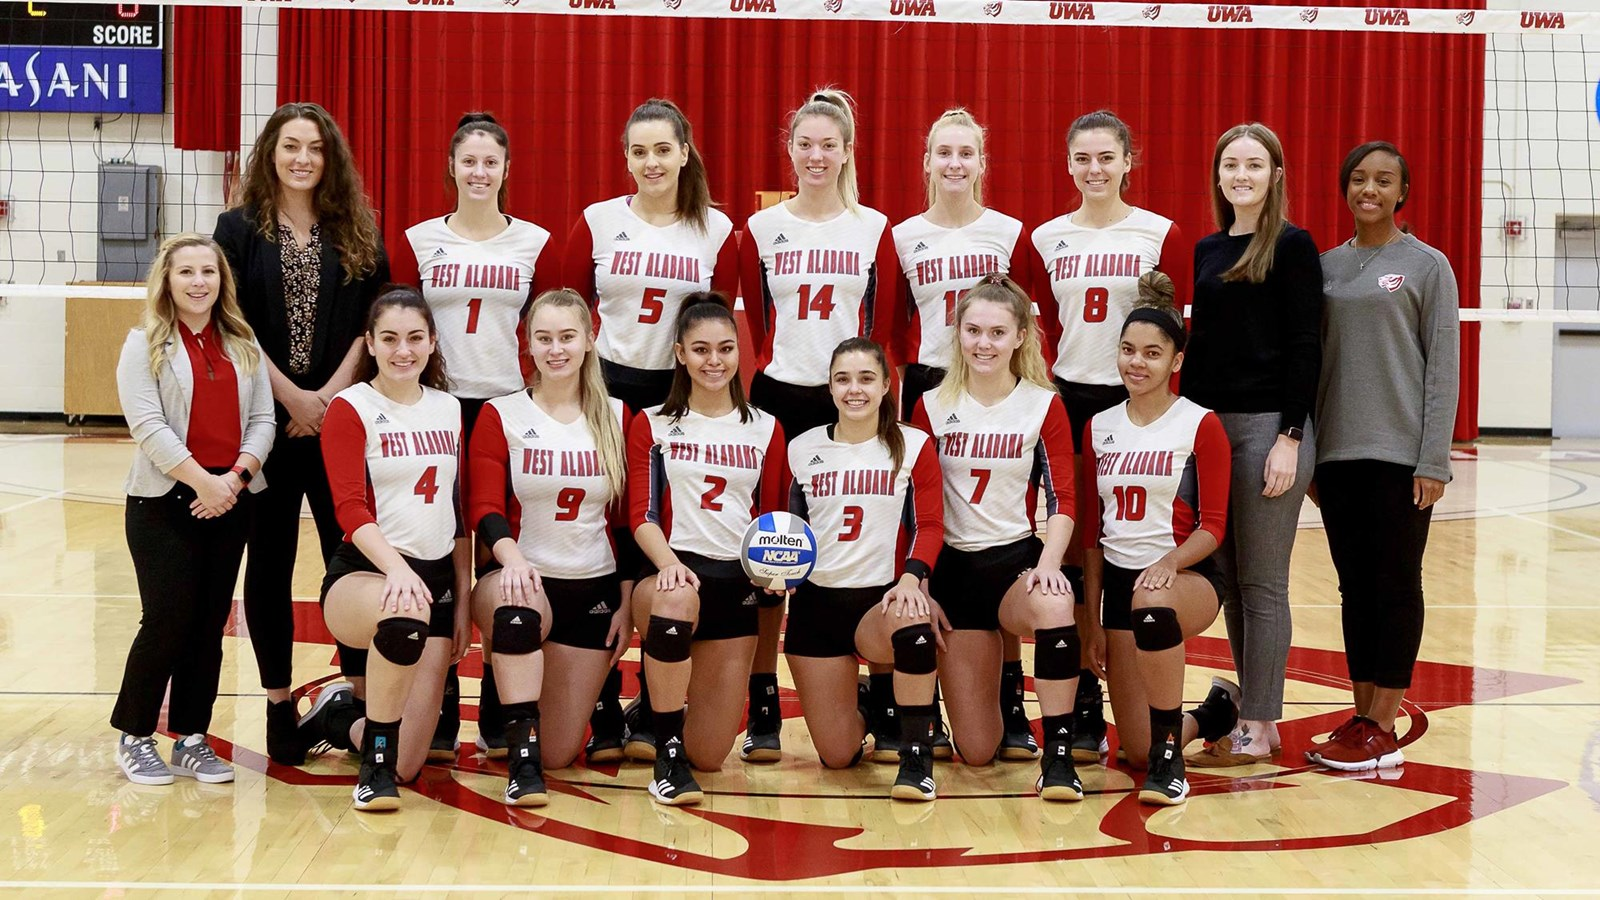 2019 Women S Volleyball Roster University Of West Alabama Athletics